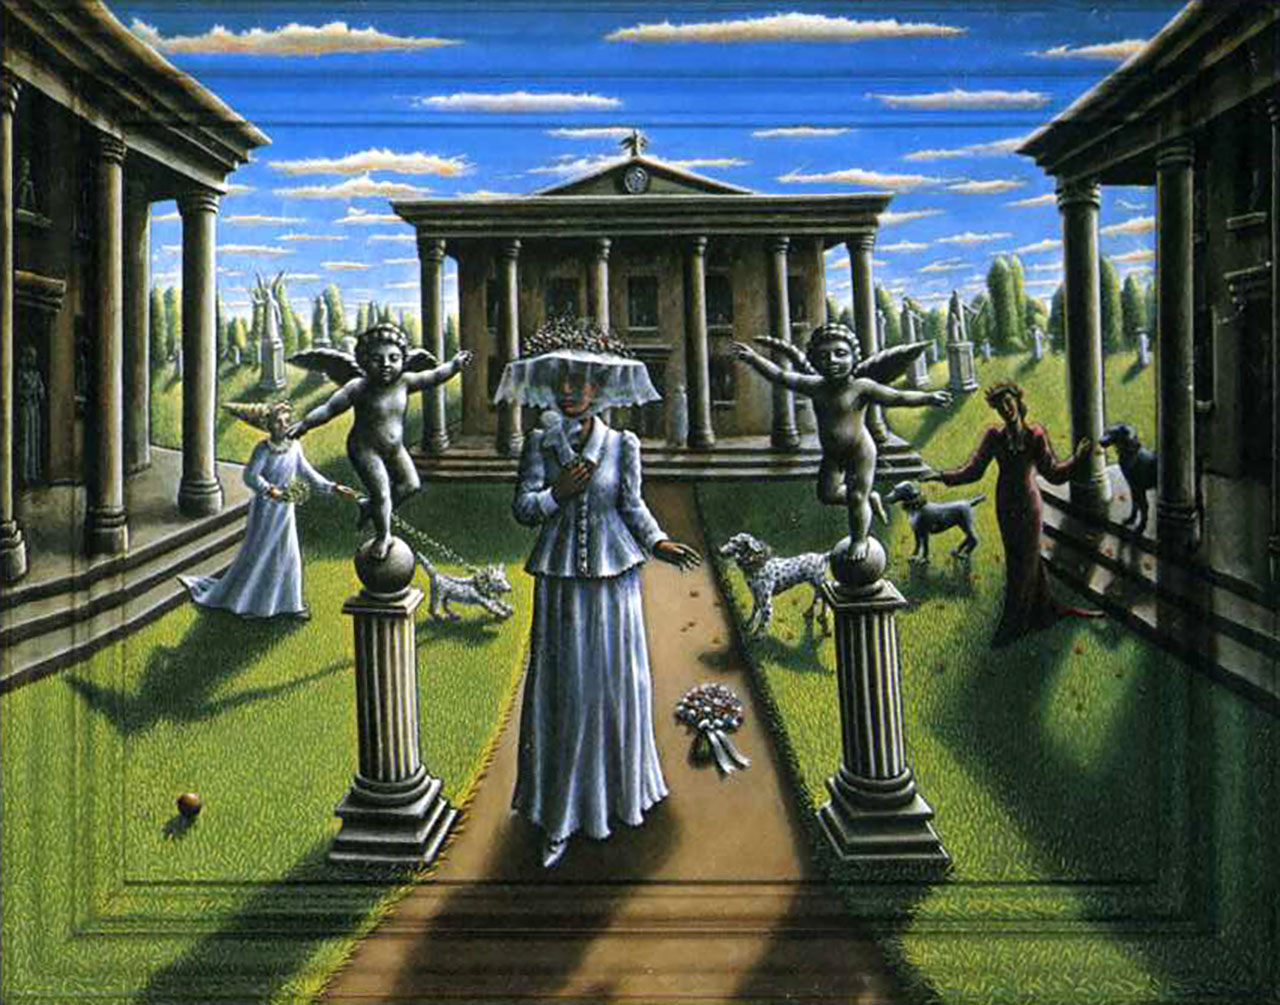 King Crimson Epitaph The Four Seasons painting by P.J. Crook